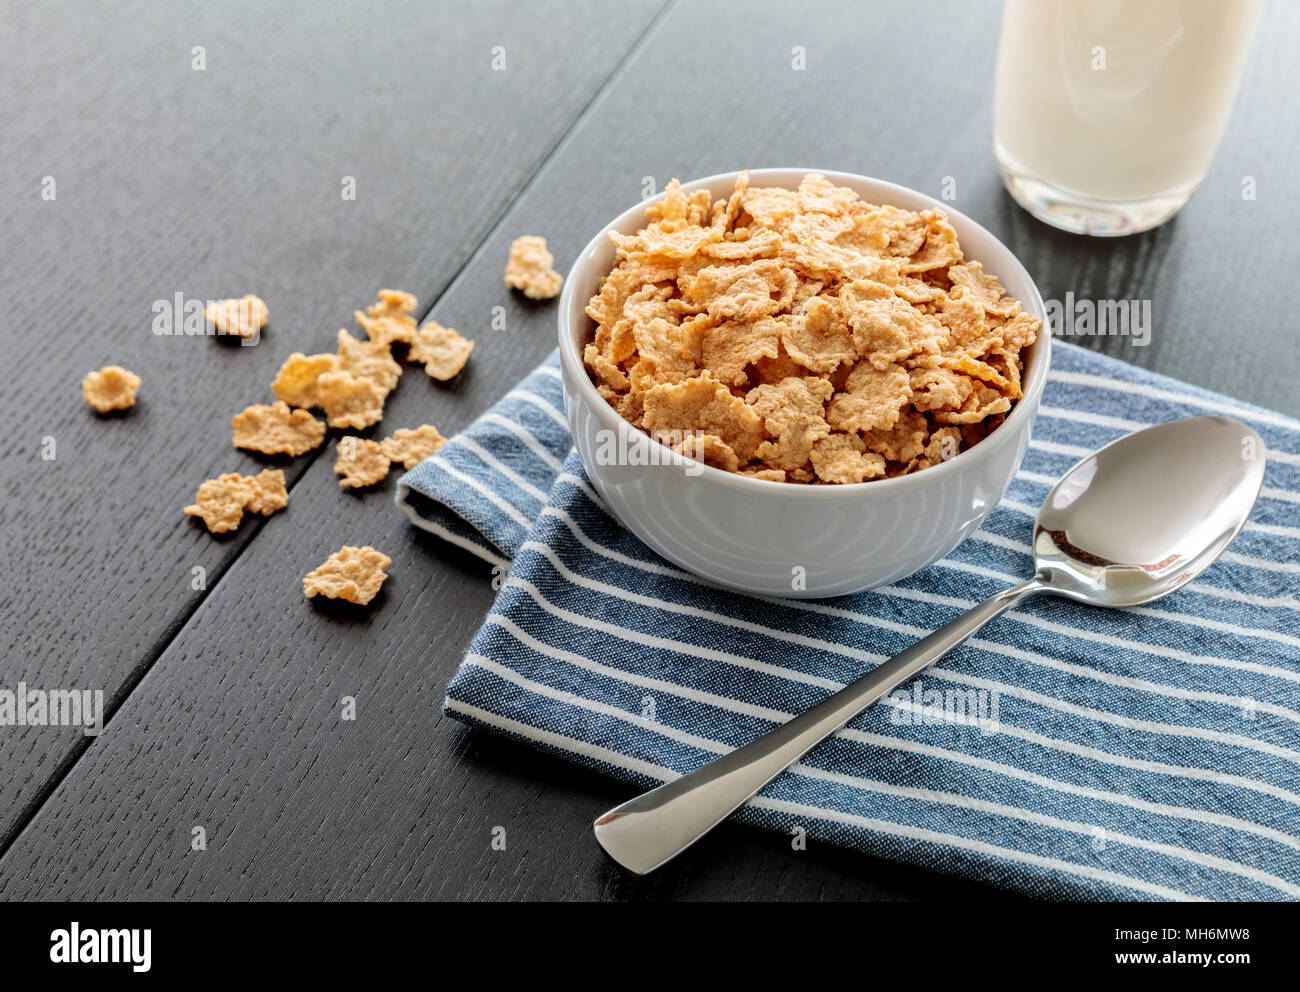 Healthy Corn Flakes with milk for Breakfast on table, food and drink - Stock Image